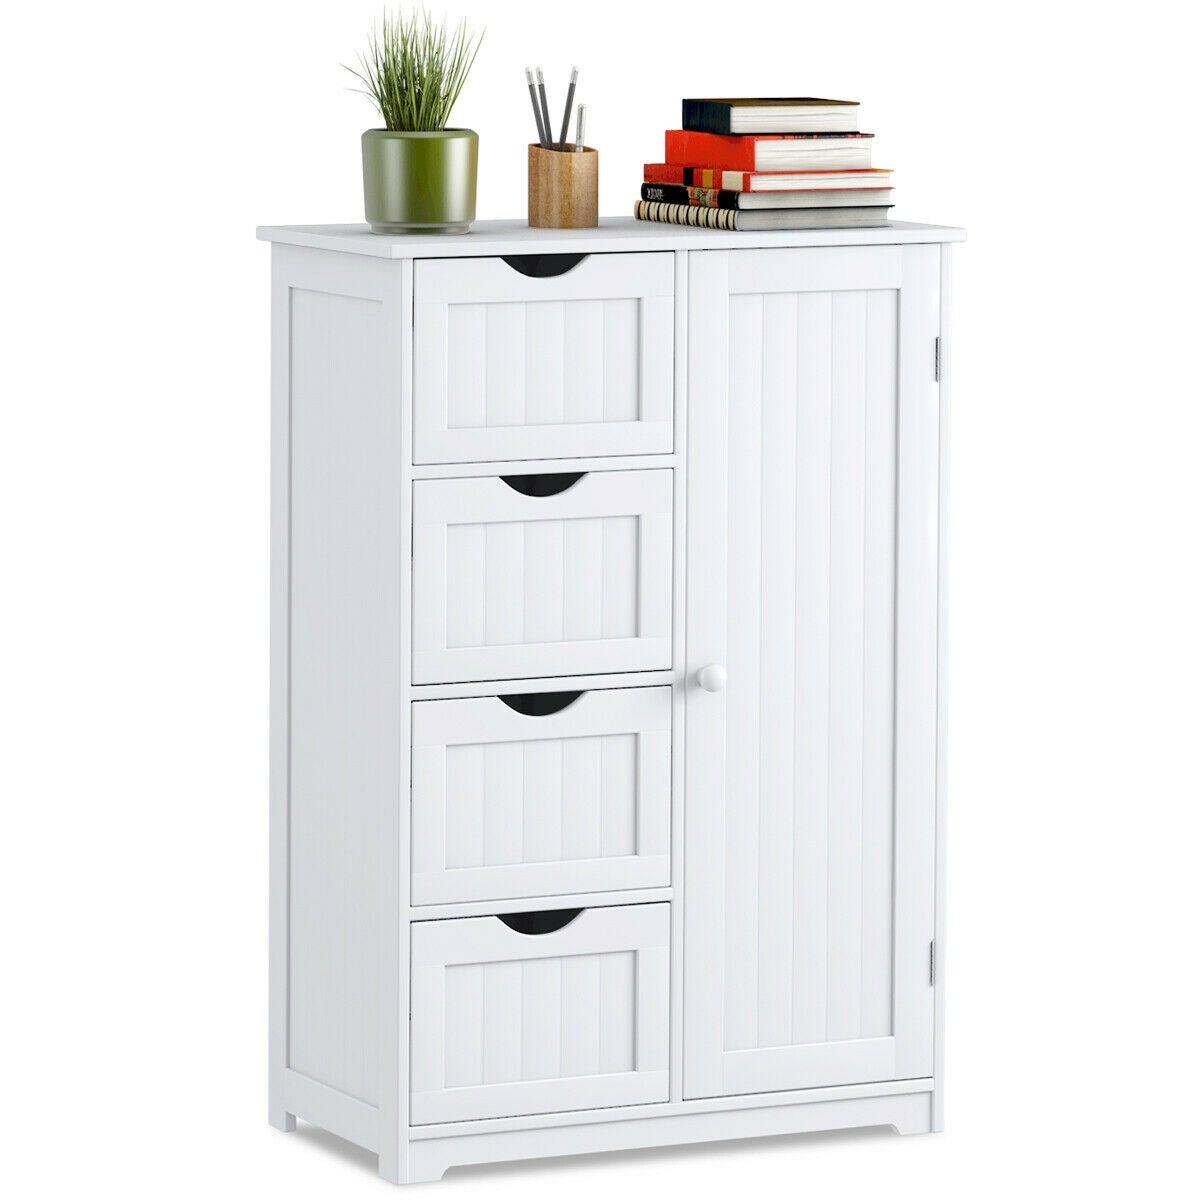 Costway Wooden 4 Drawer Bathroom Cabinet Storage Cupboard 2 Shelves Free Standing White intended for size 1200 X 1200